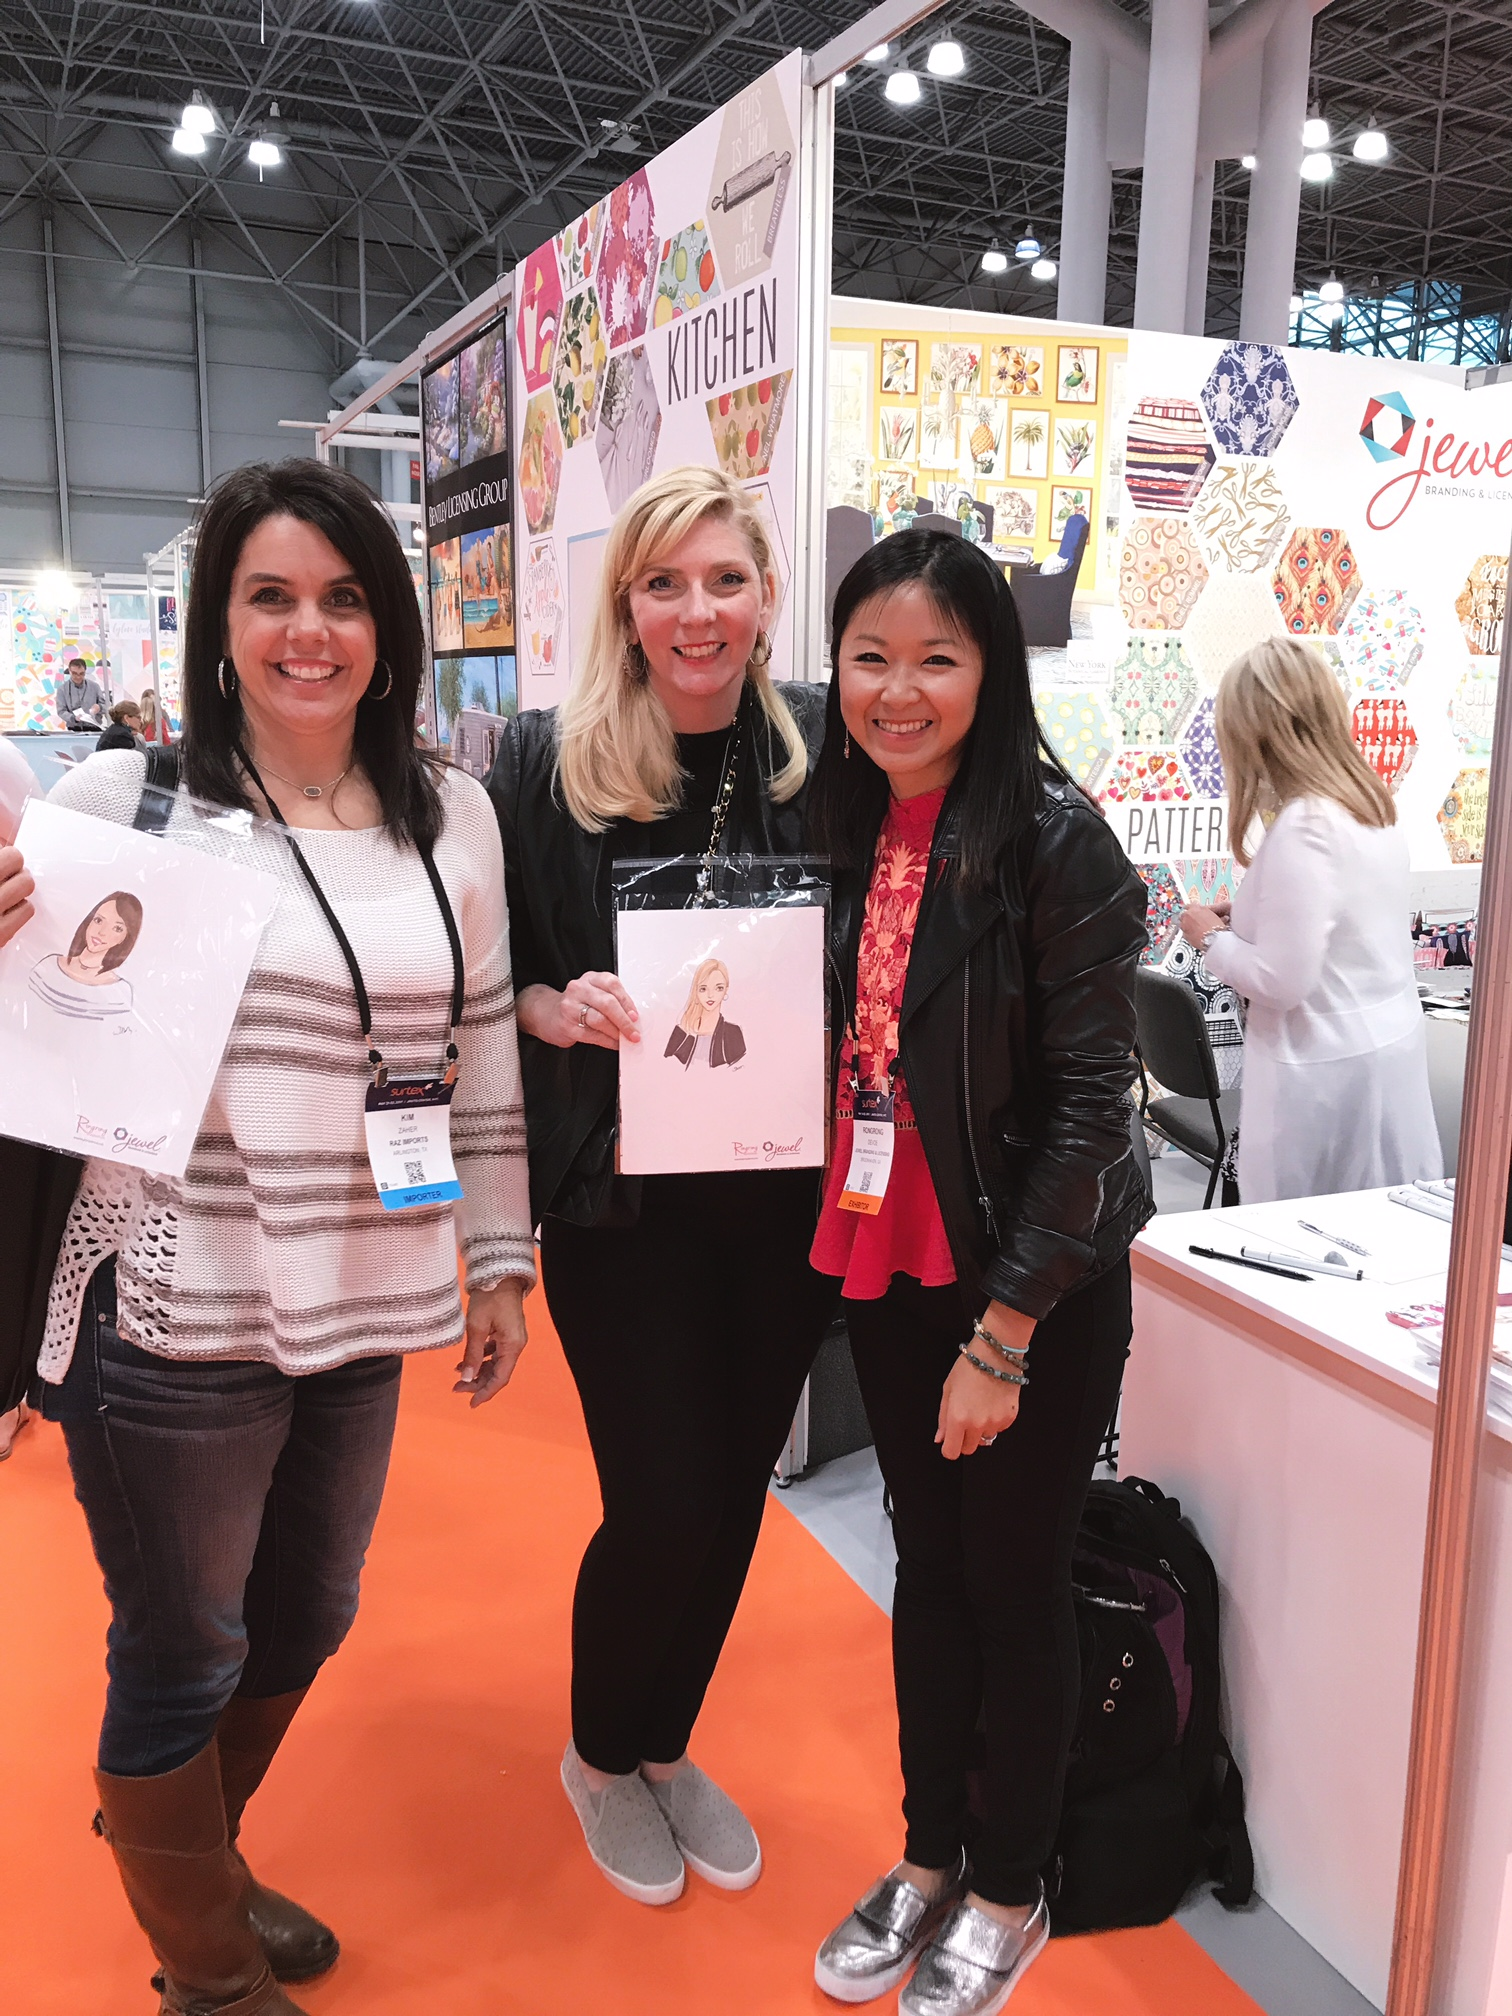 Licensing Artist Rongrong DeVoe live sketching at Jewel Branding booth at Surtex 2017-1